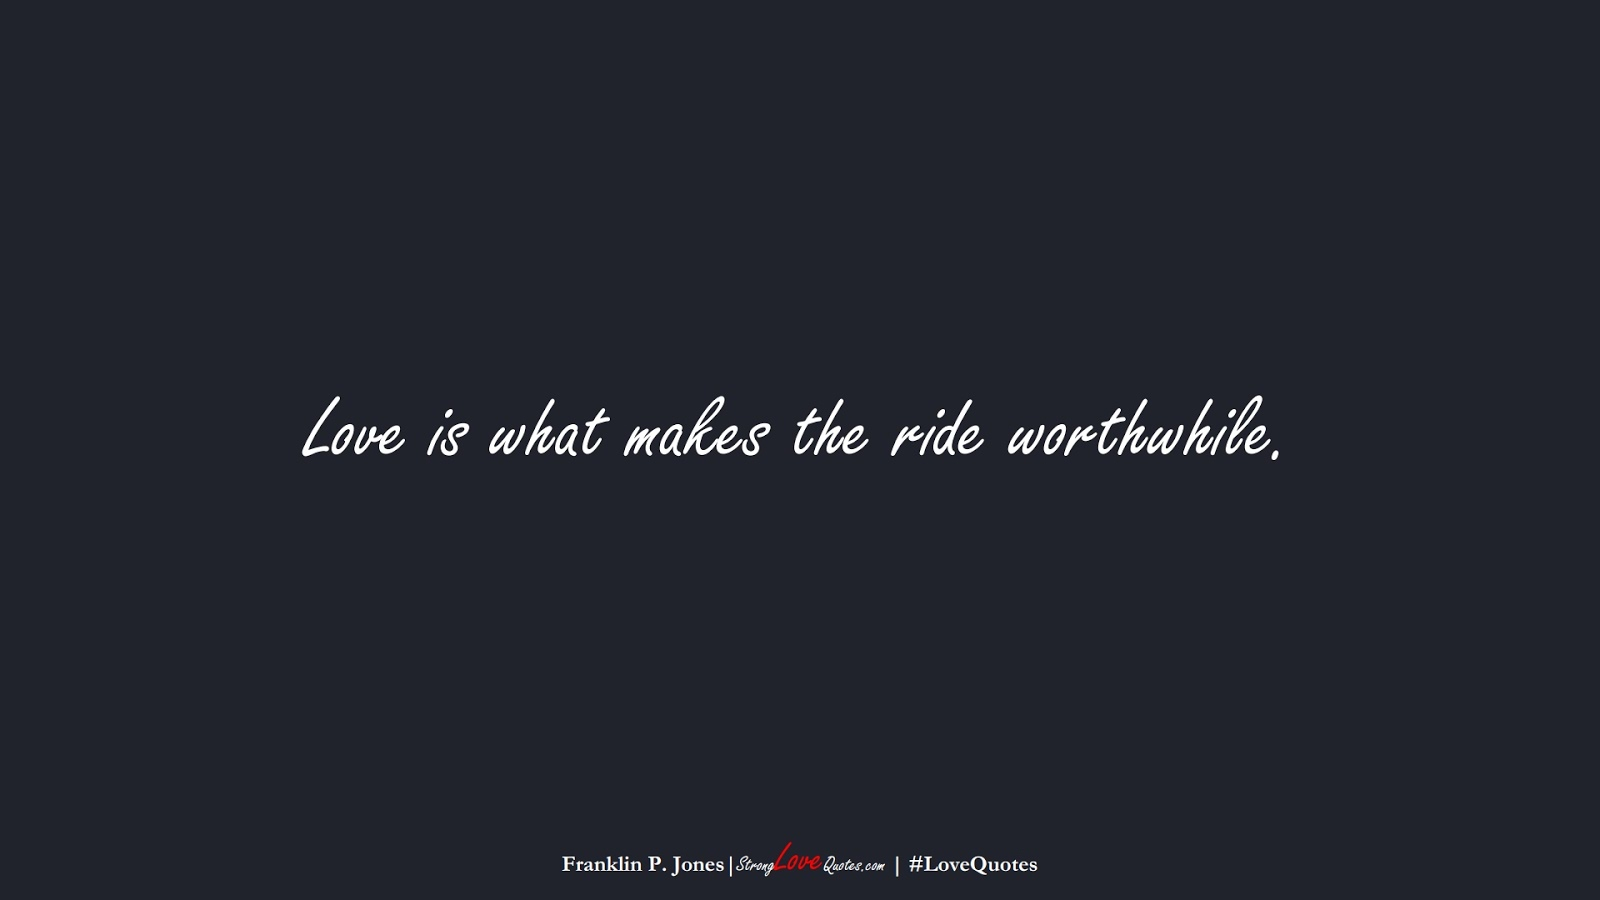 Love is what makes the ride worthwhile. (Franklin P. Jones);  #LoveQuotes